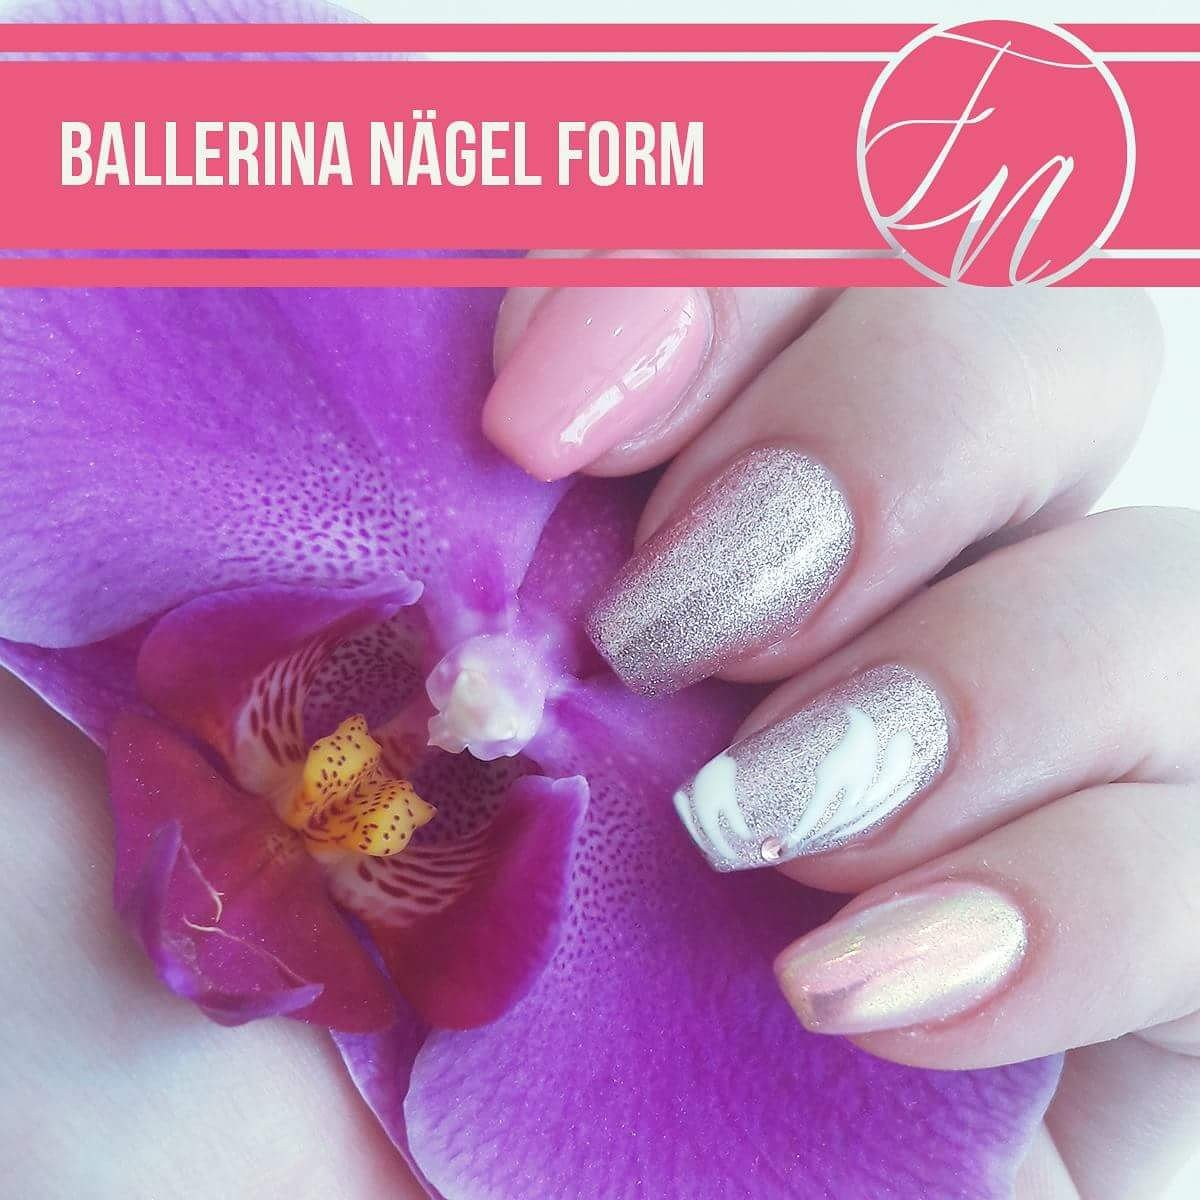 Ballerina Nägel Ihr Nagelstudio On Twitter